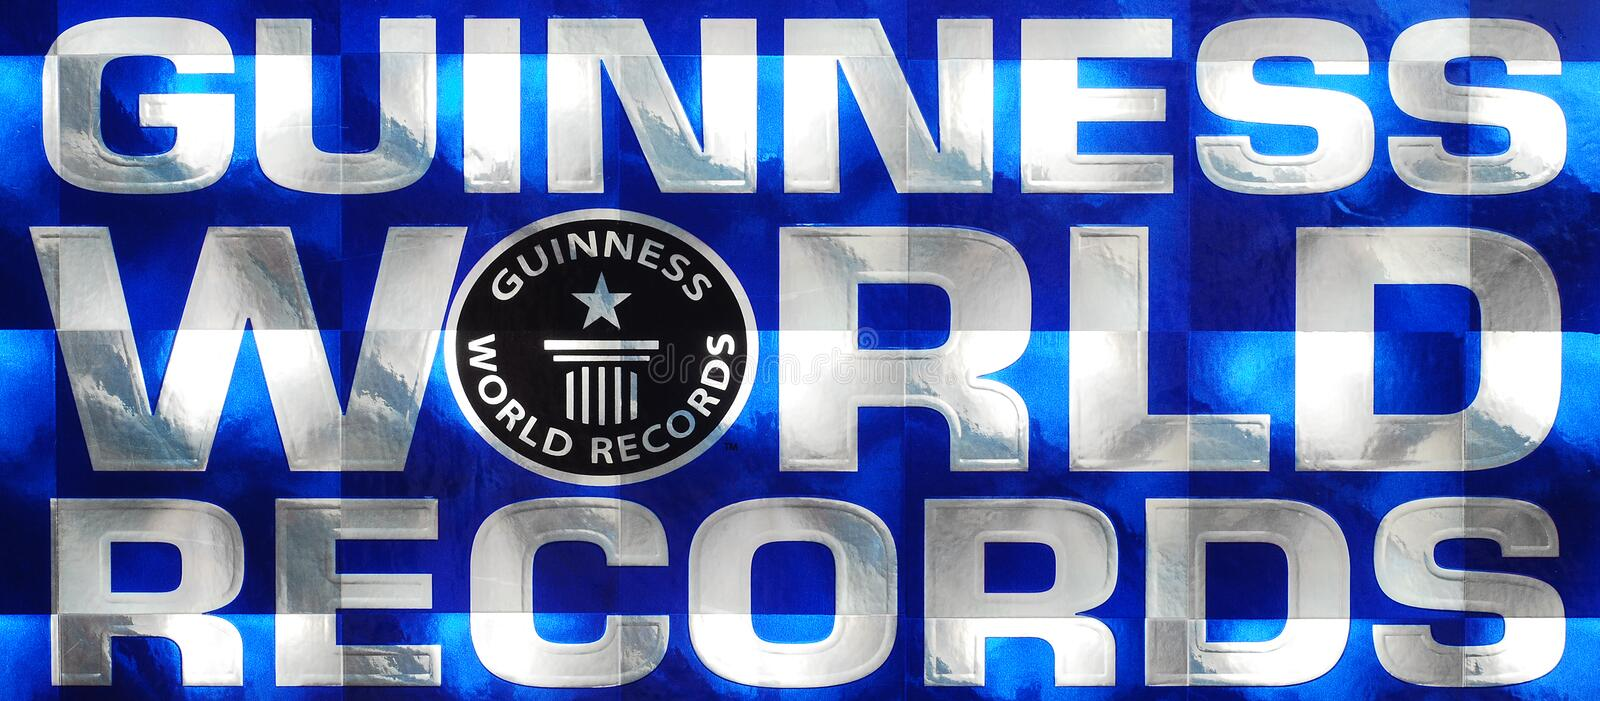 Guinness world records logo royalty free stock photos